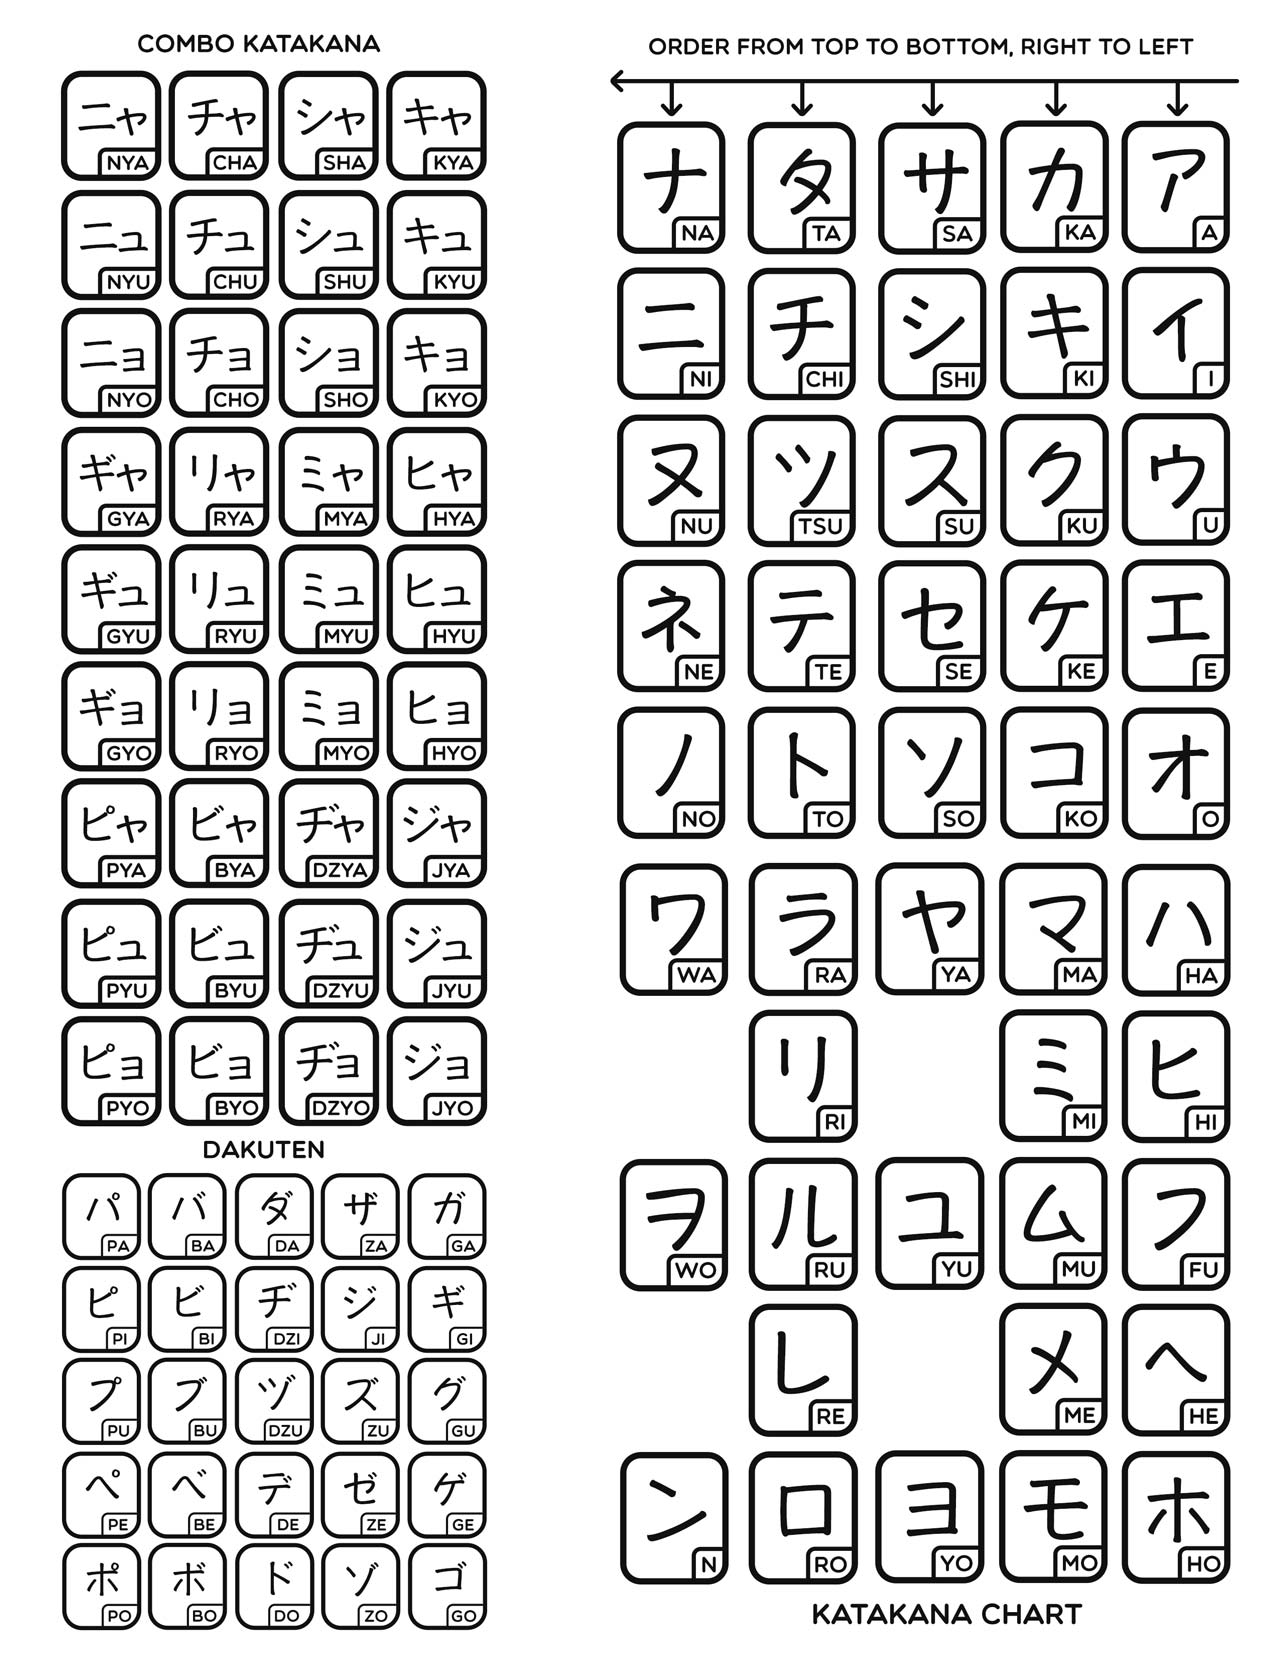 katakana chart made by katakana